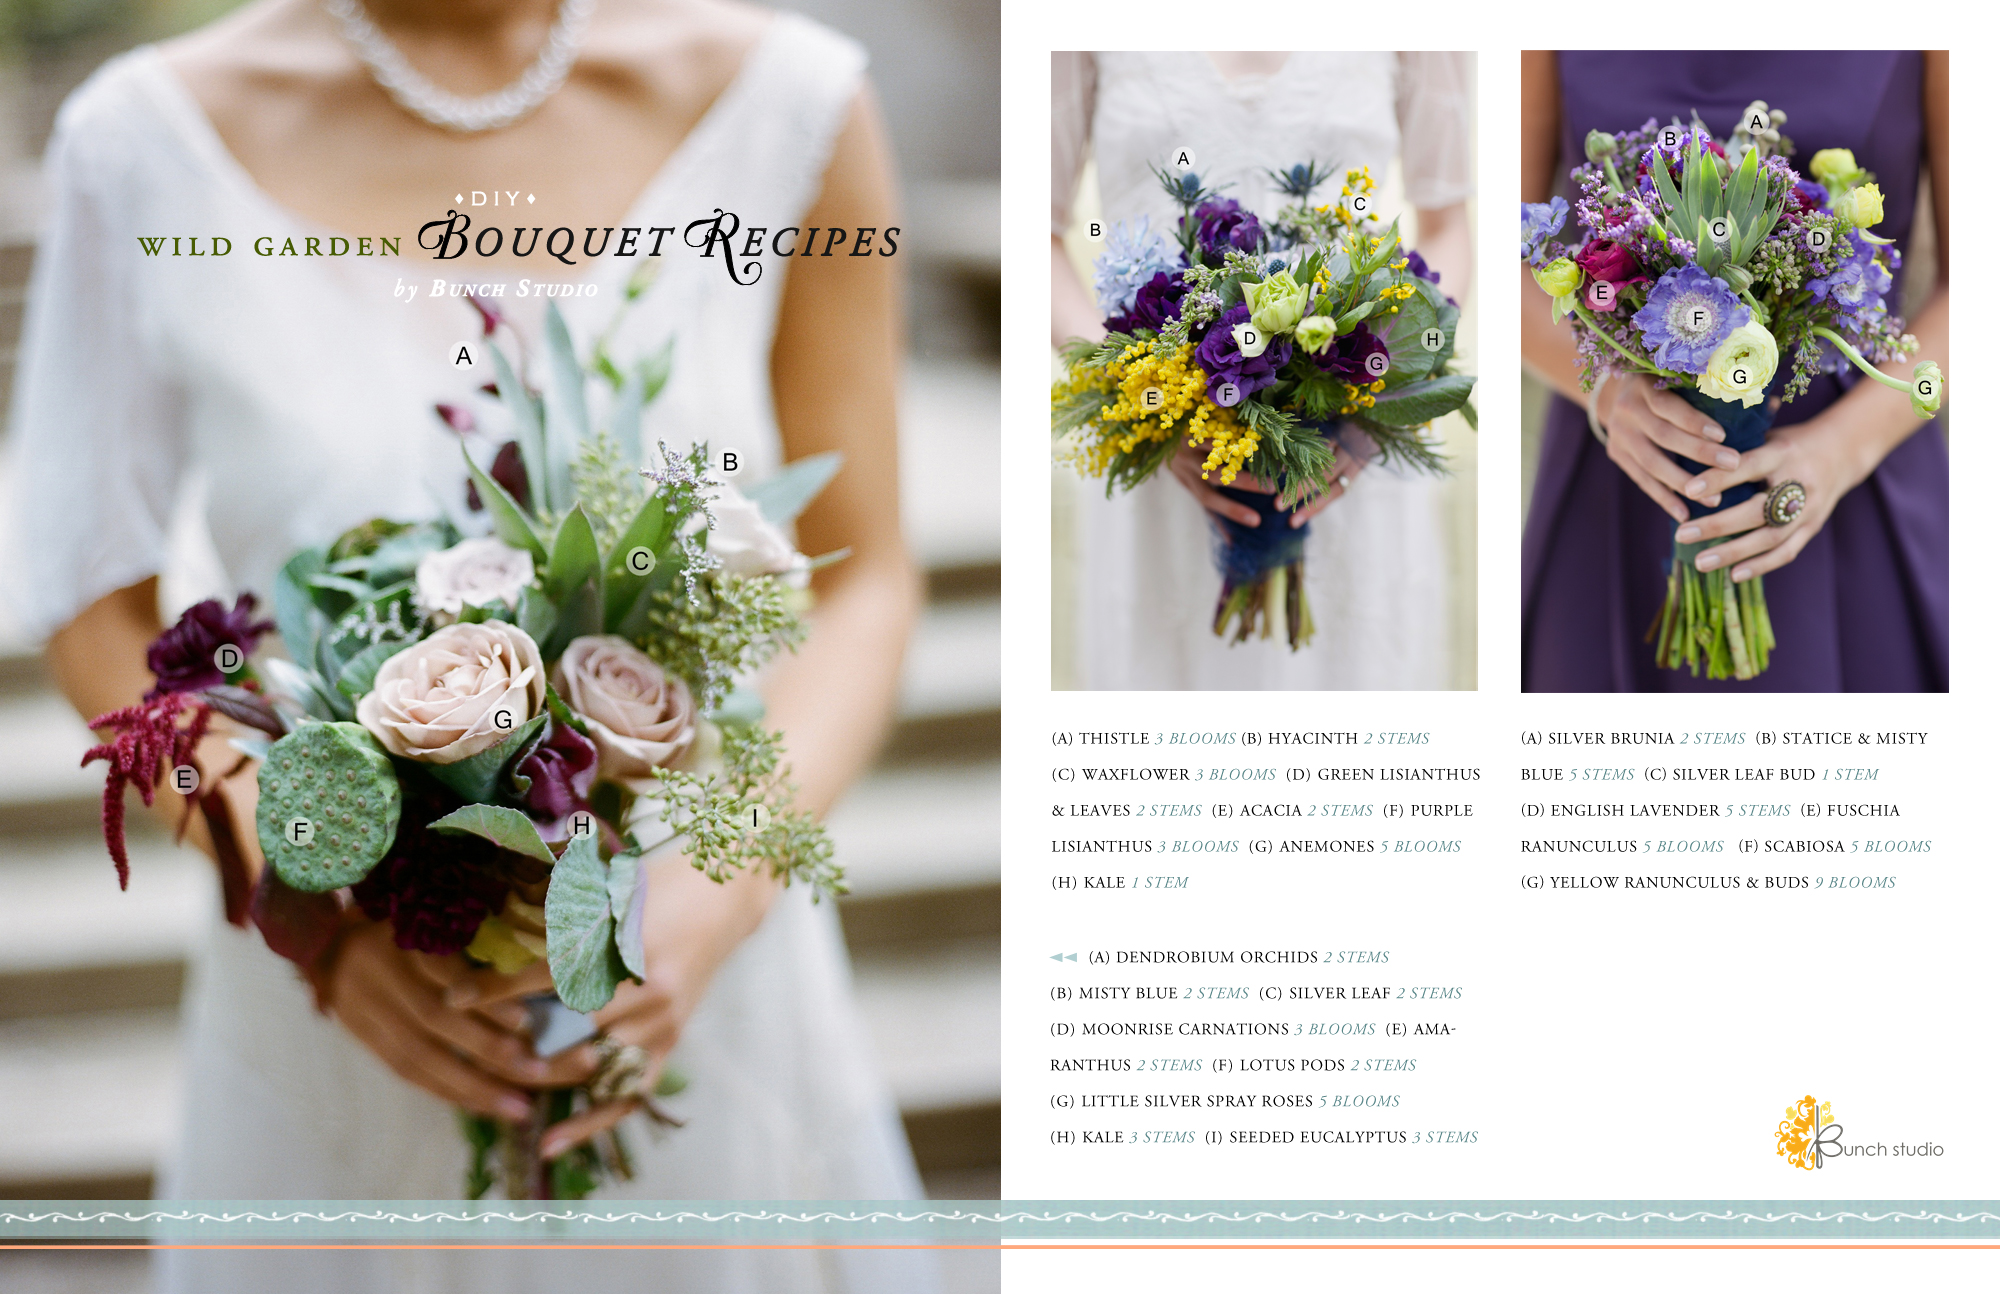 Wedding Bliss Guide Wild Garden Bouquet Recipes